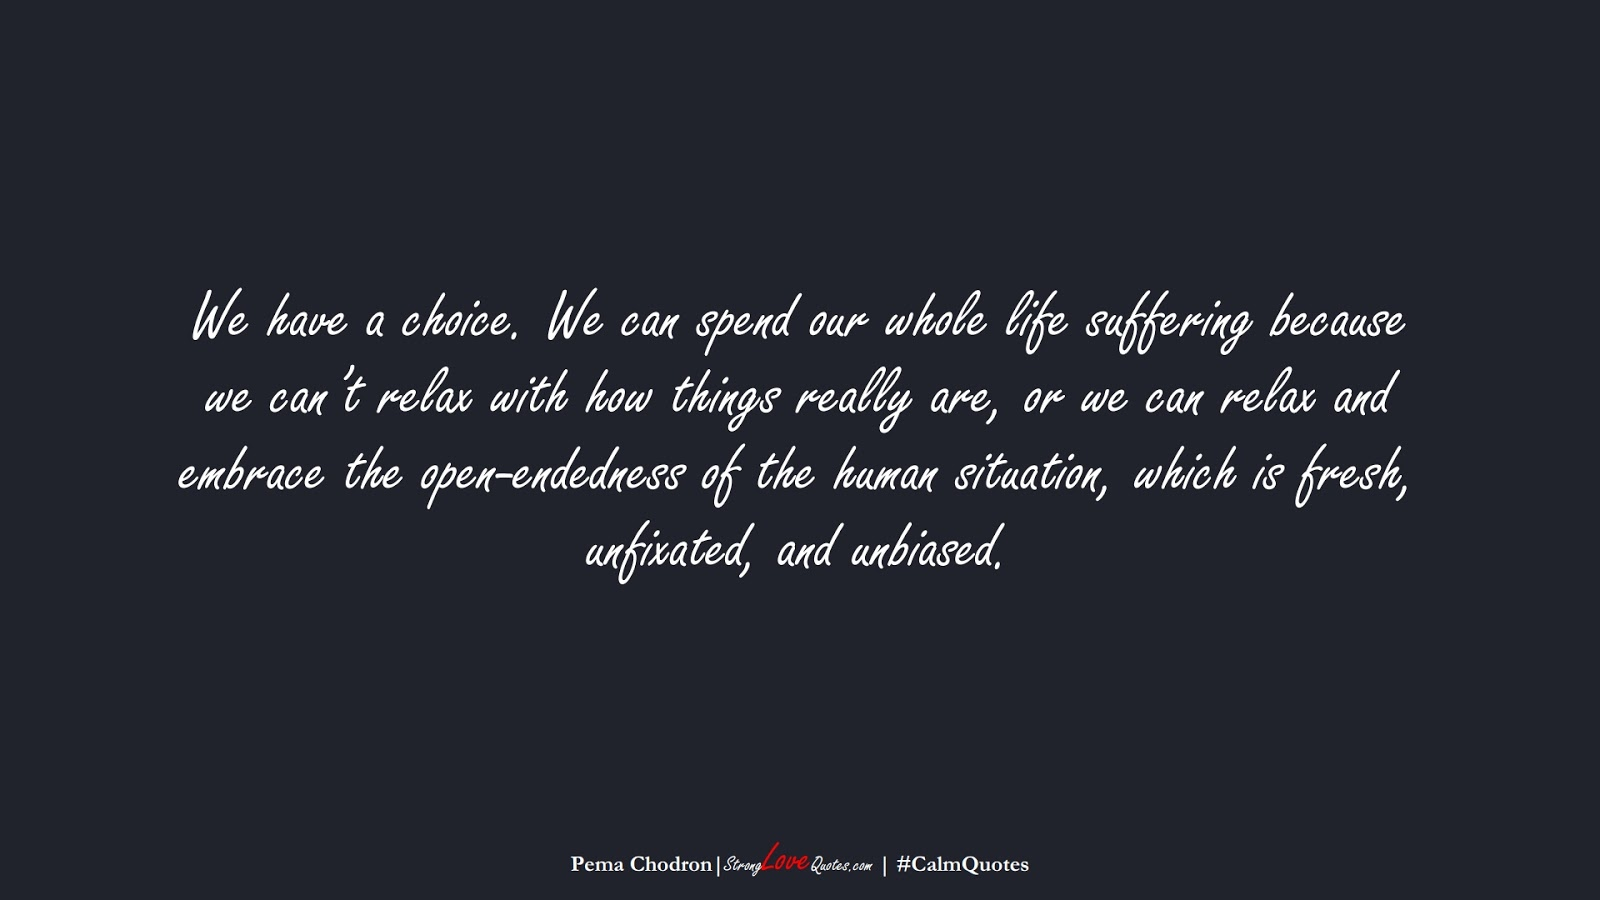 We have a choice. We can spend our whole life suffering because we can't relax with how things really are, or we can relax and embrace the open-endedness of the human situation, which is fresh, unfixated, and unbiased. (Pema Chodron);  #CalmQuotes